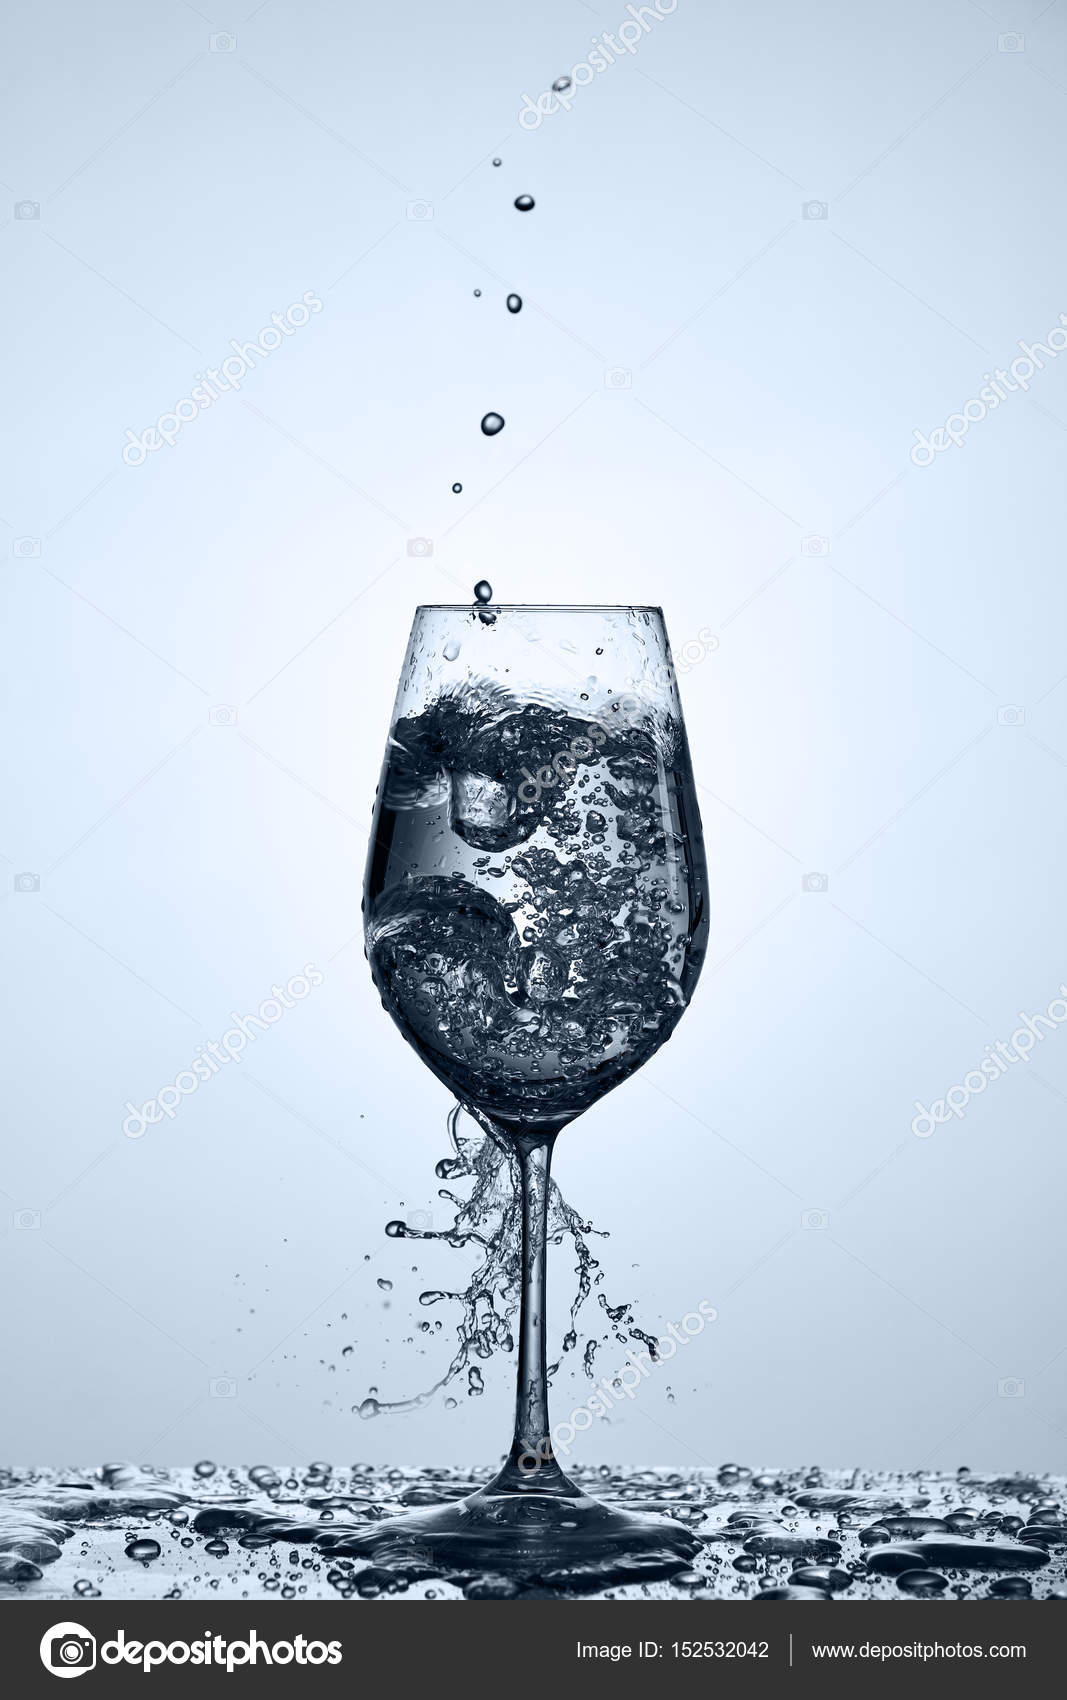 Pouring Transparent Water Into Wine Glass With Beautiful